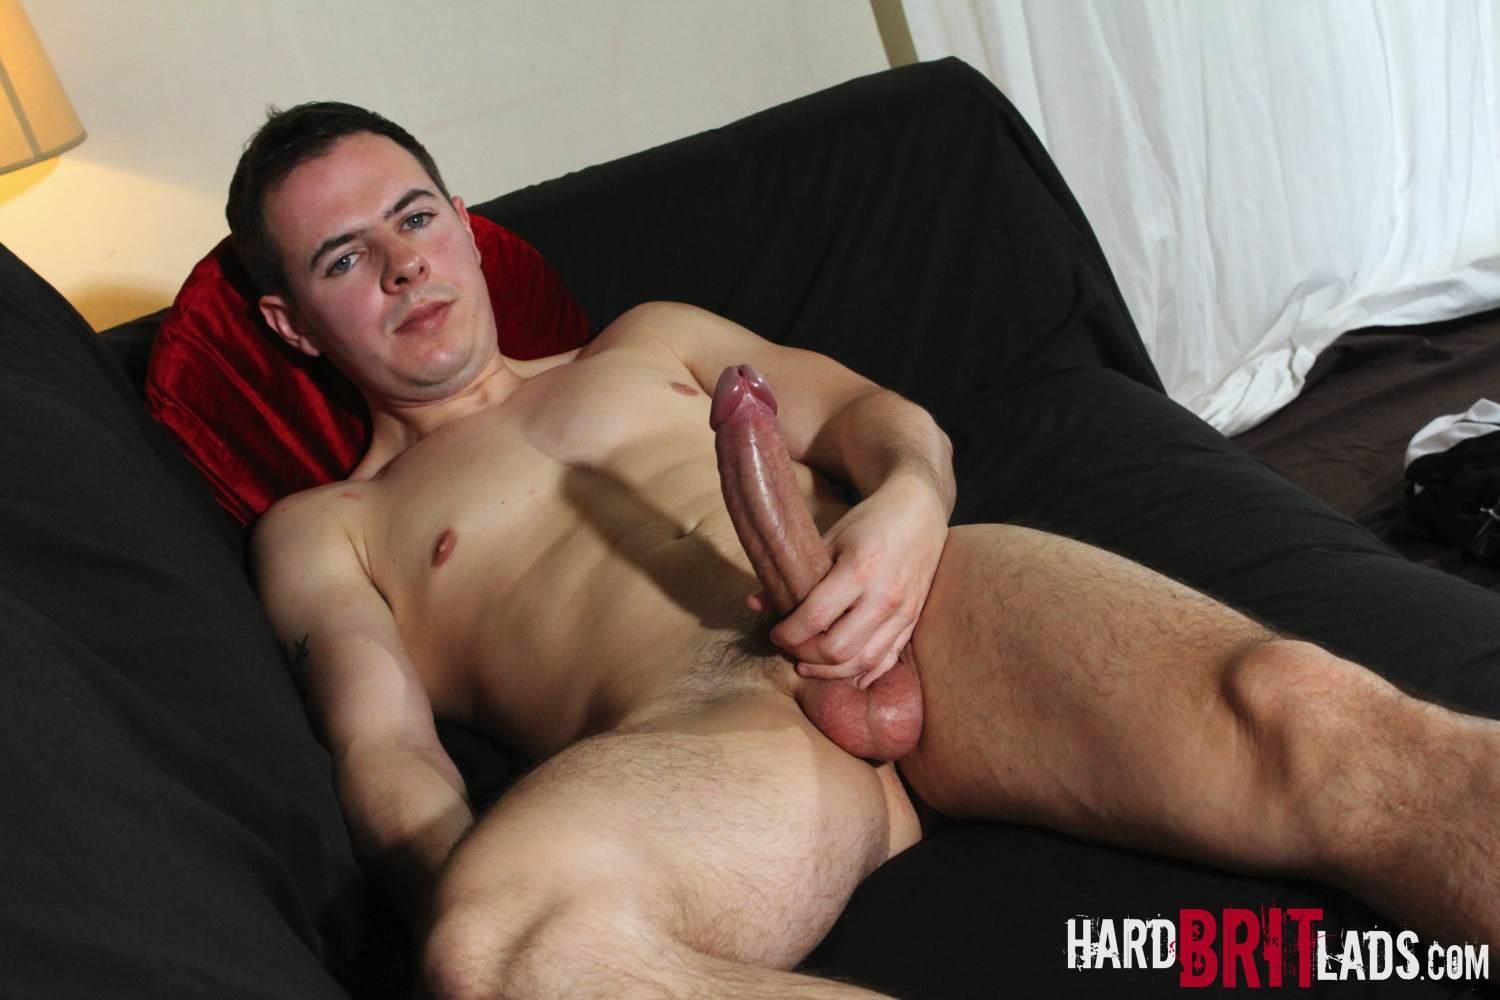 Amateur Twink Filming His Slippery Wanking